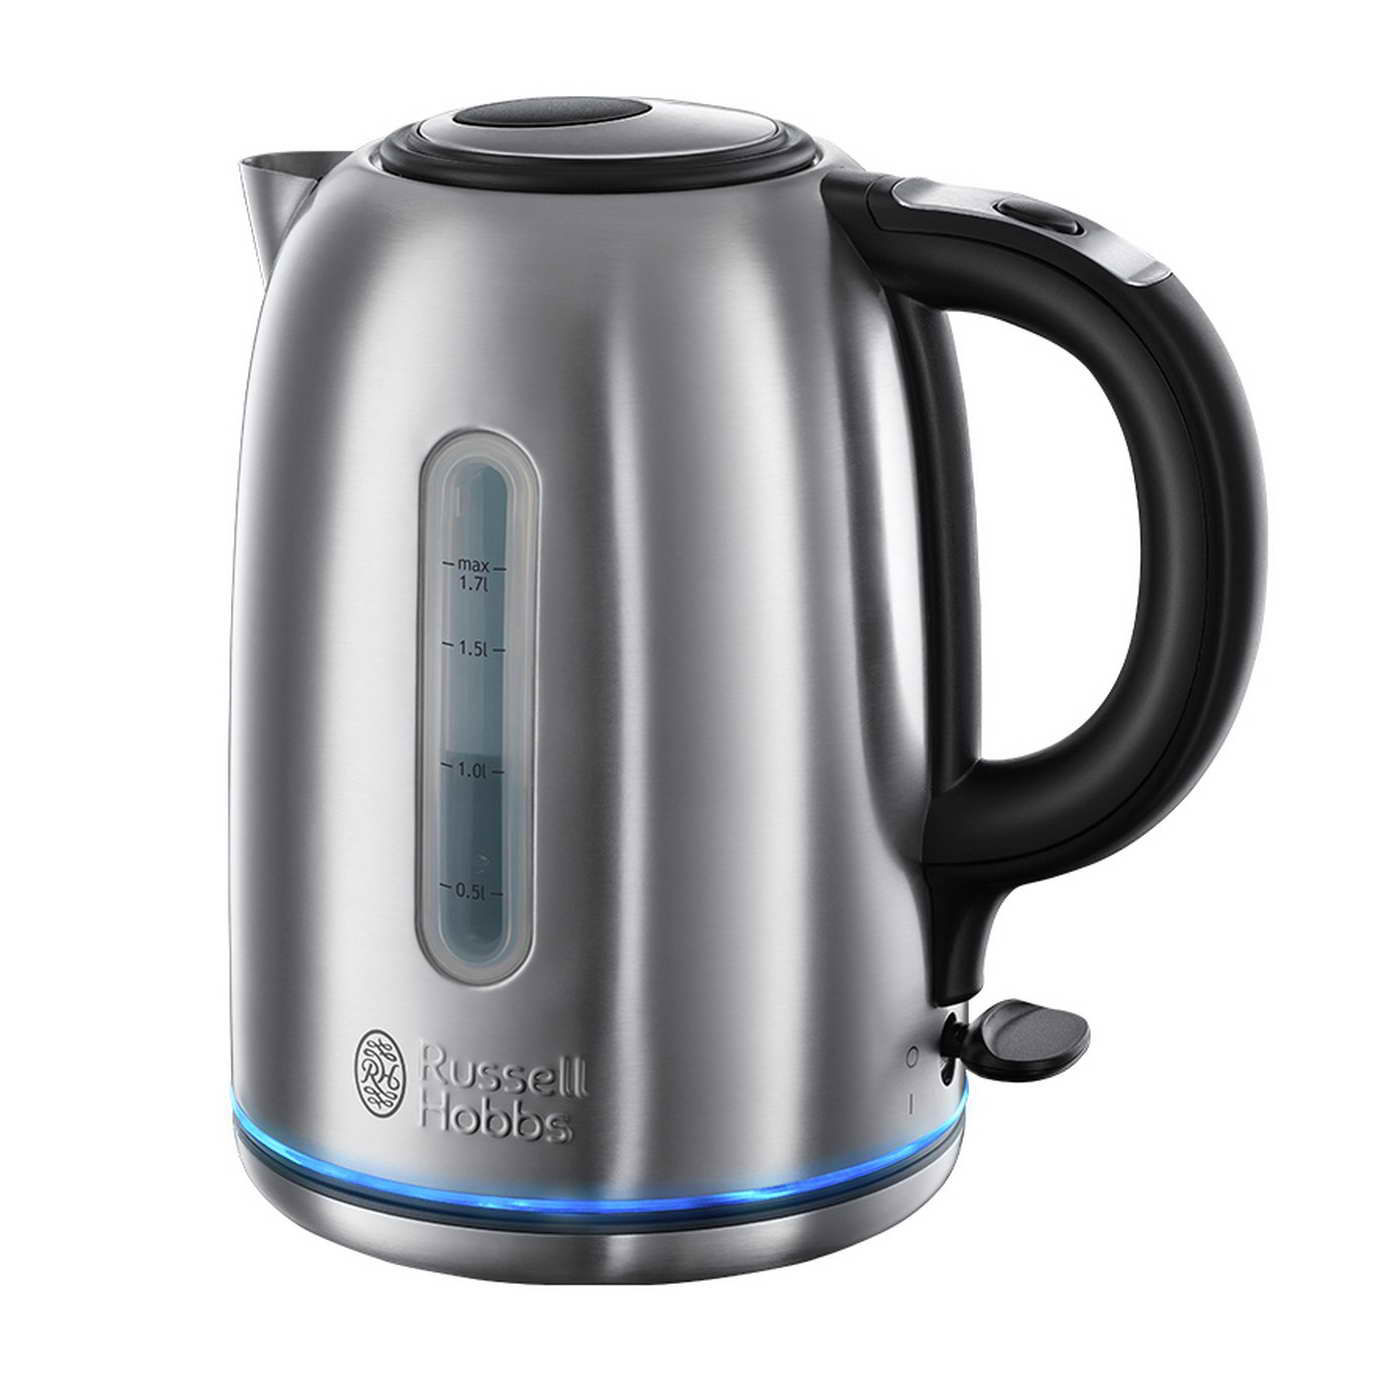 Picture of Russell Hobbs 20460 Buckingham Kettle, Stainless Steel